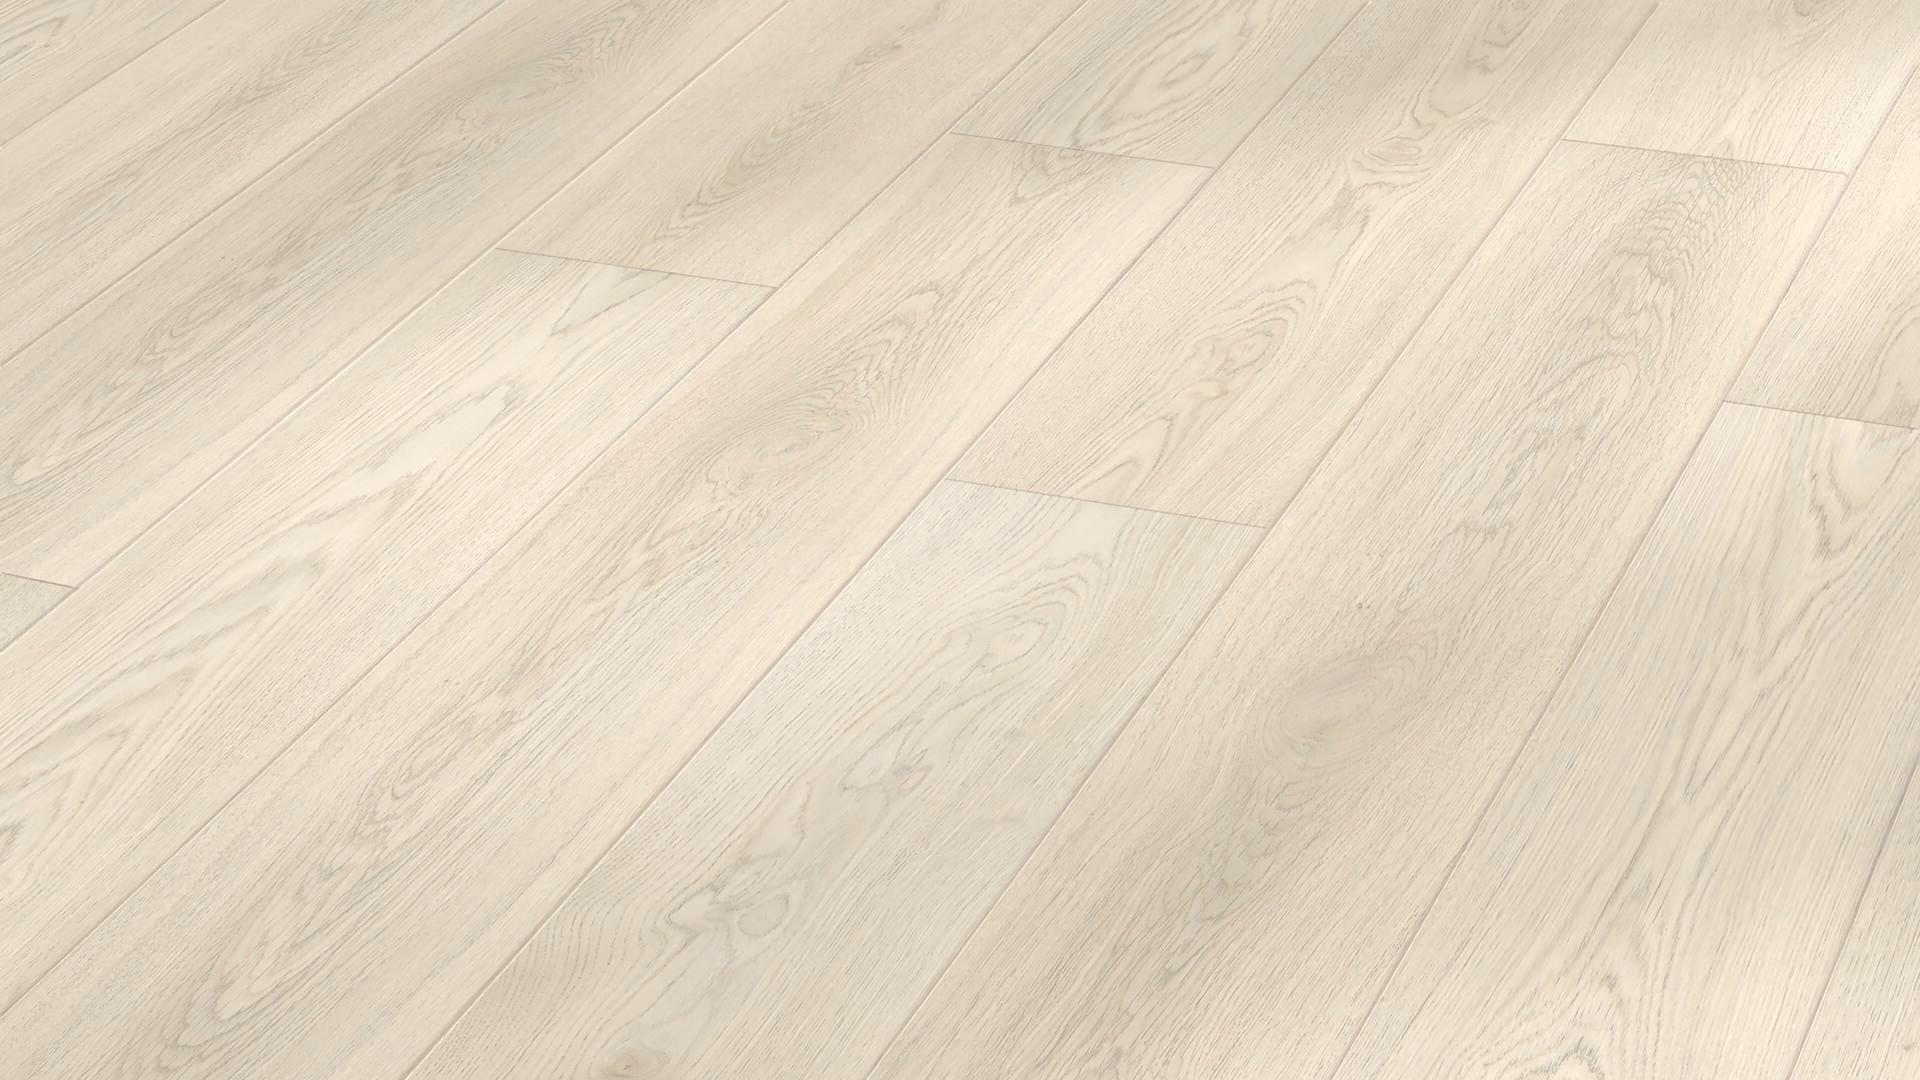 Laminate flooring MeisterDesign. laminate LD 150 Marzipan oak 6268